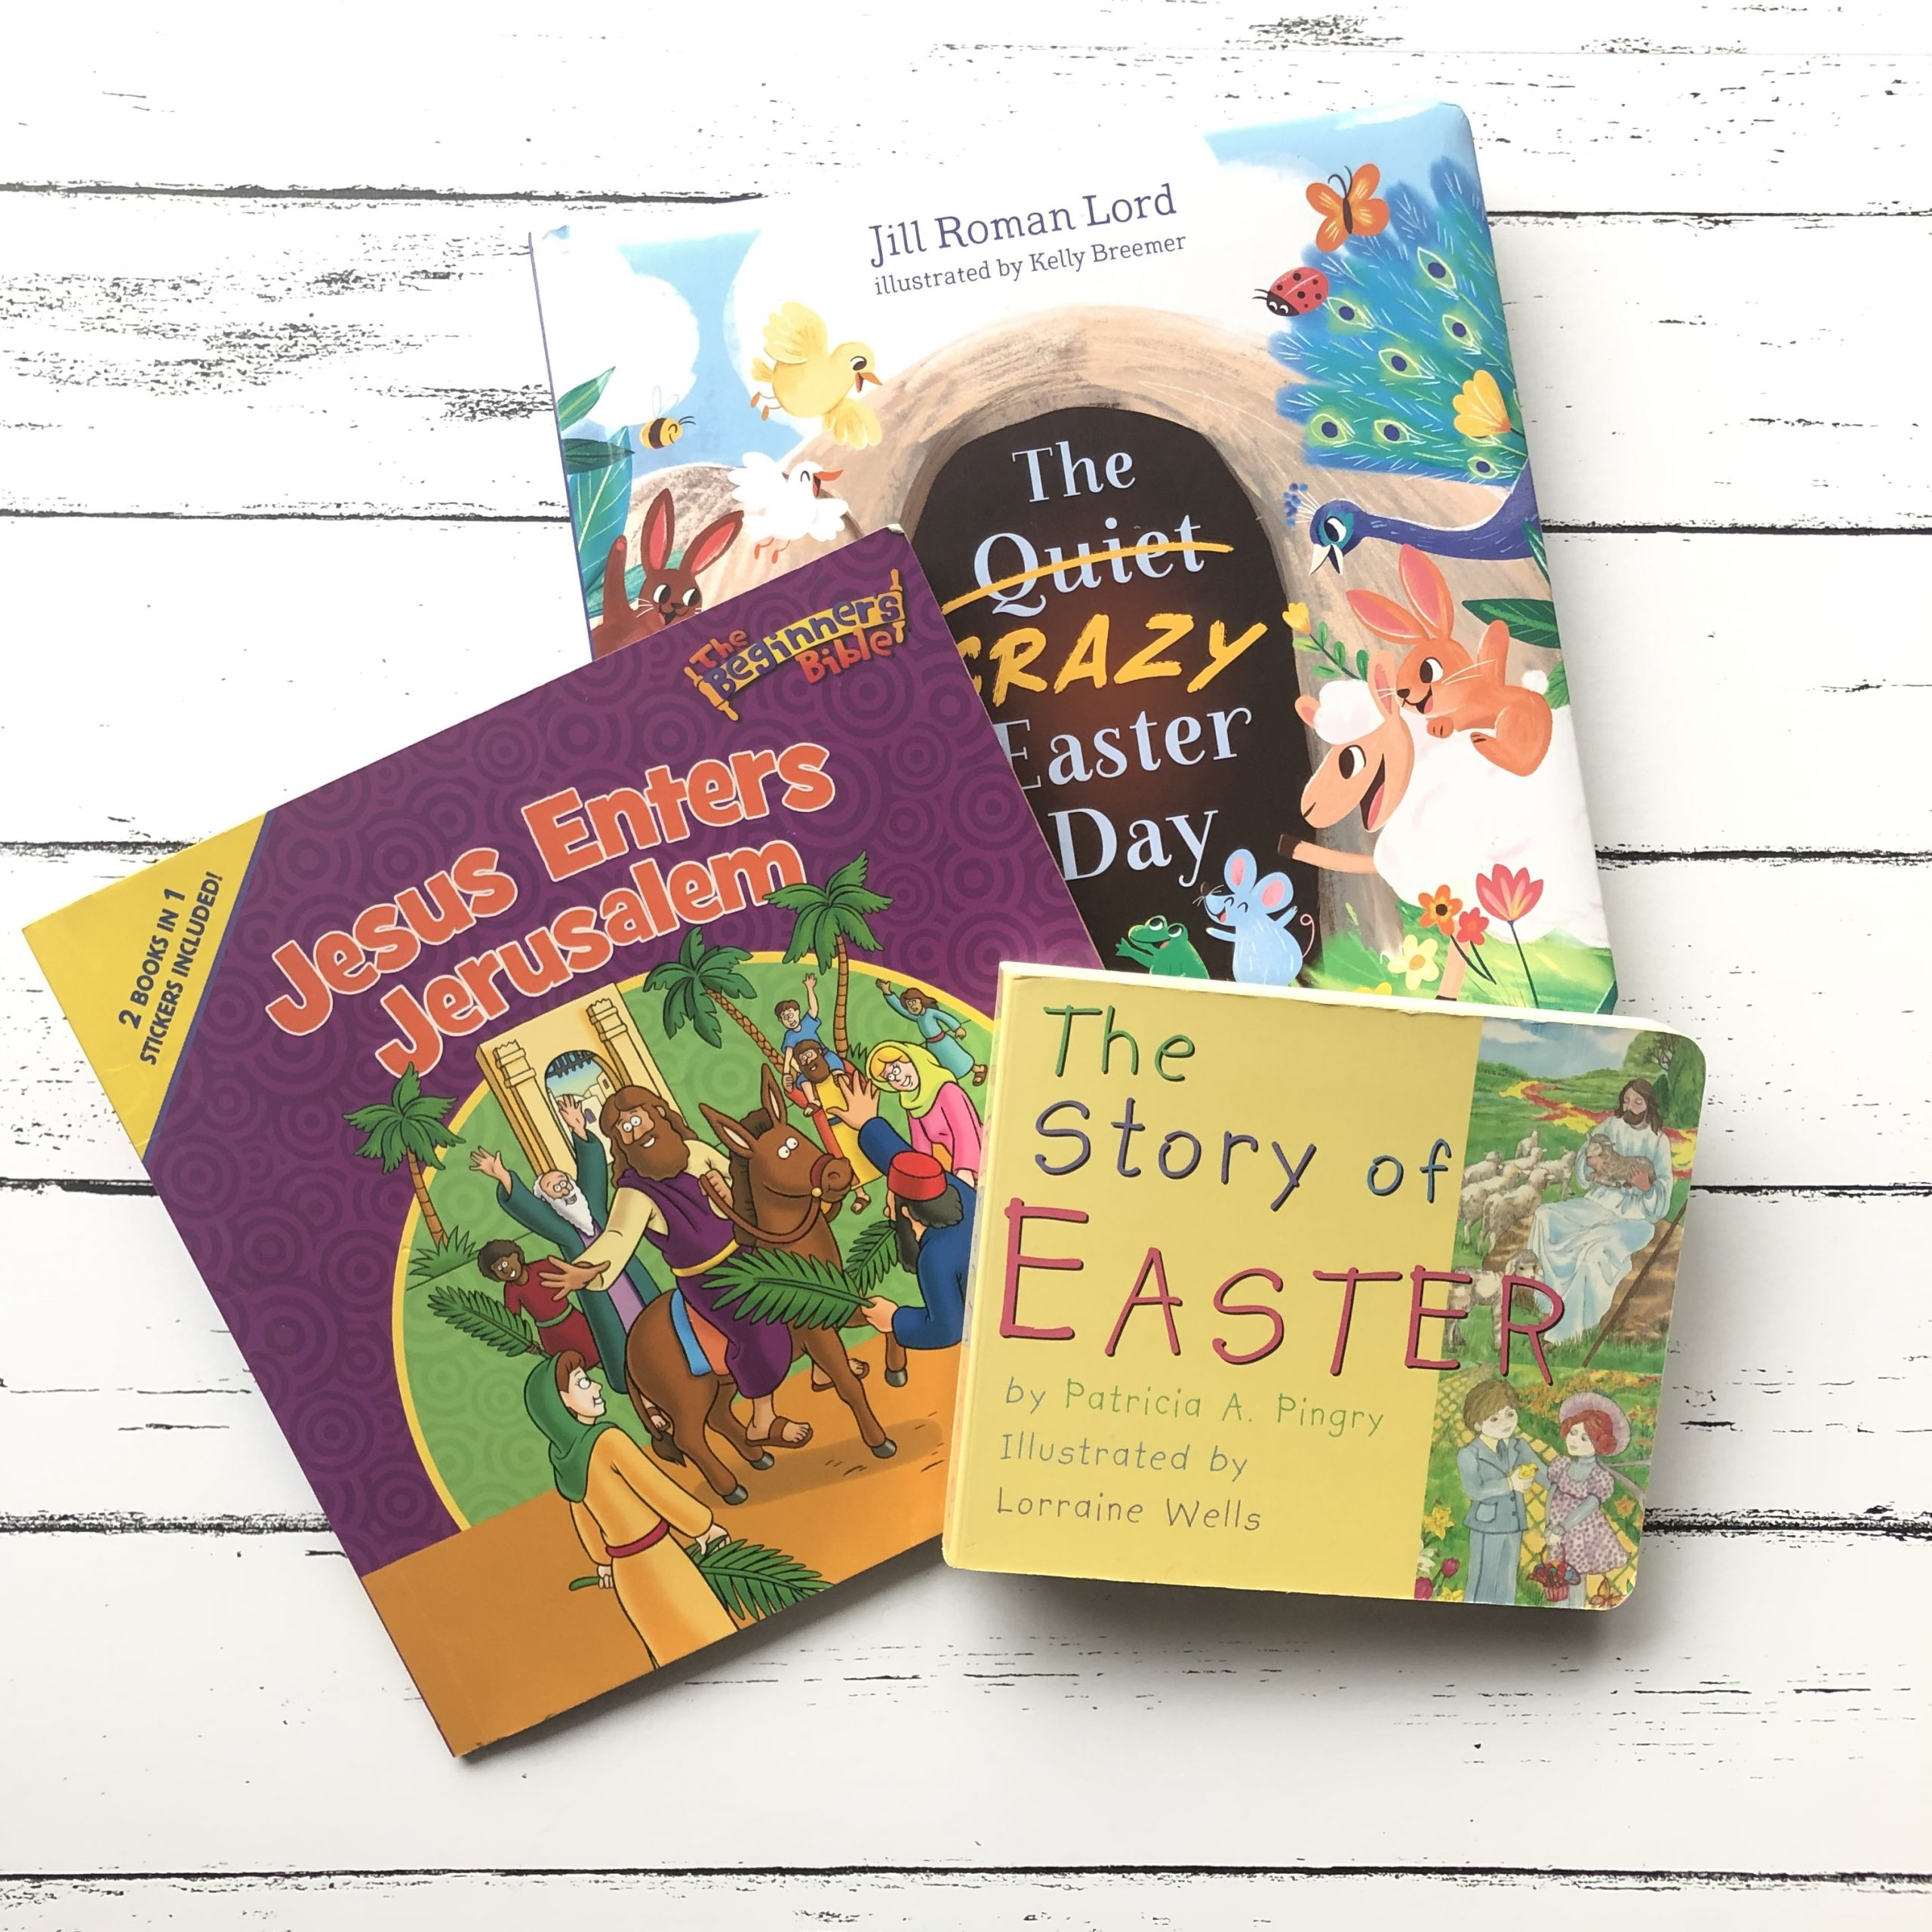 Christ-Centered Easter Books for Kids